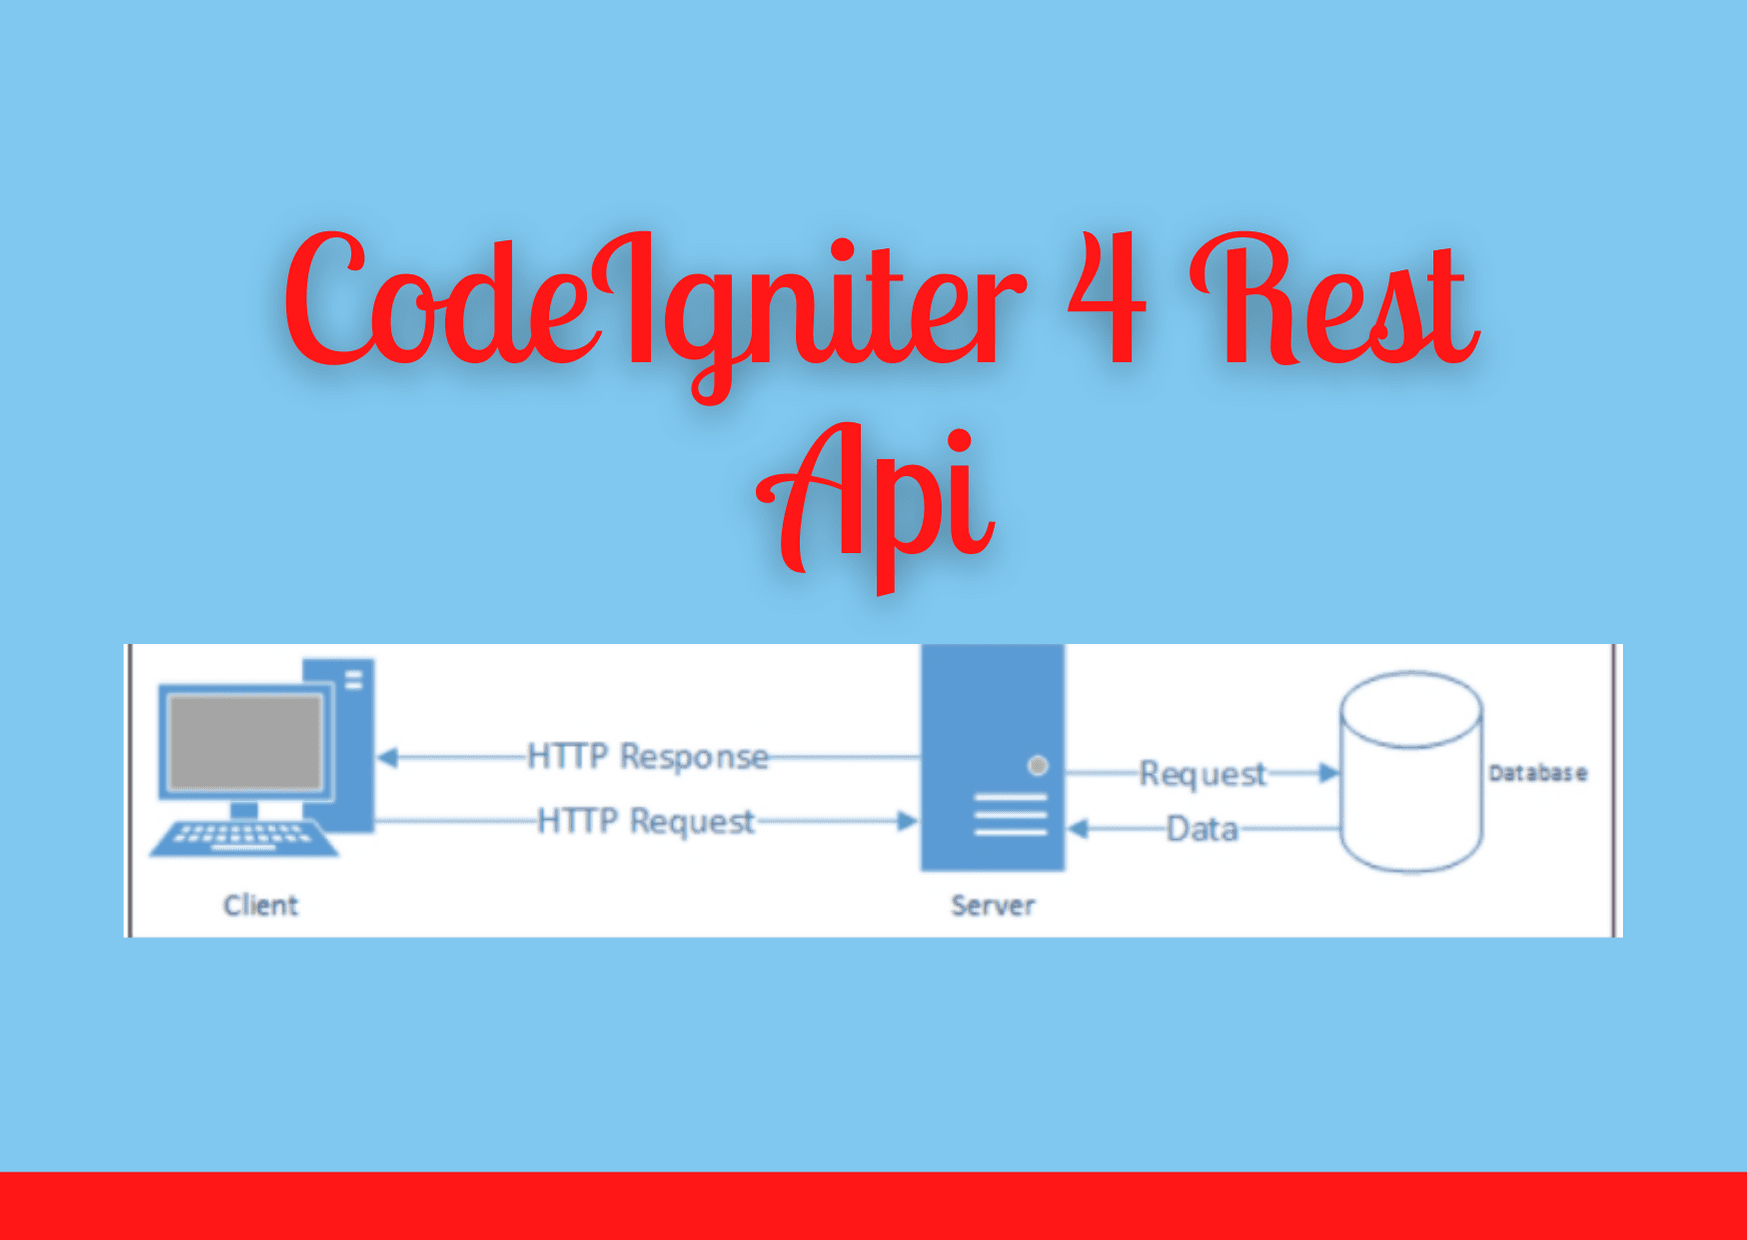 Codeigniter 4 REST API Tutorial with Example